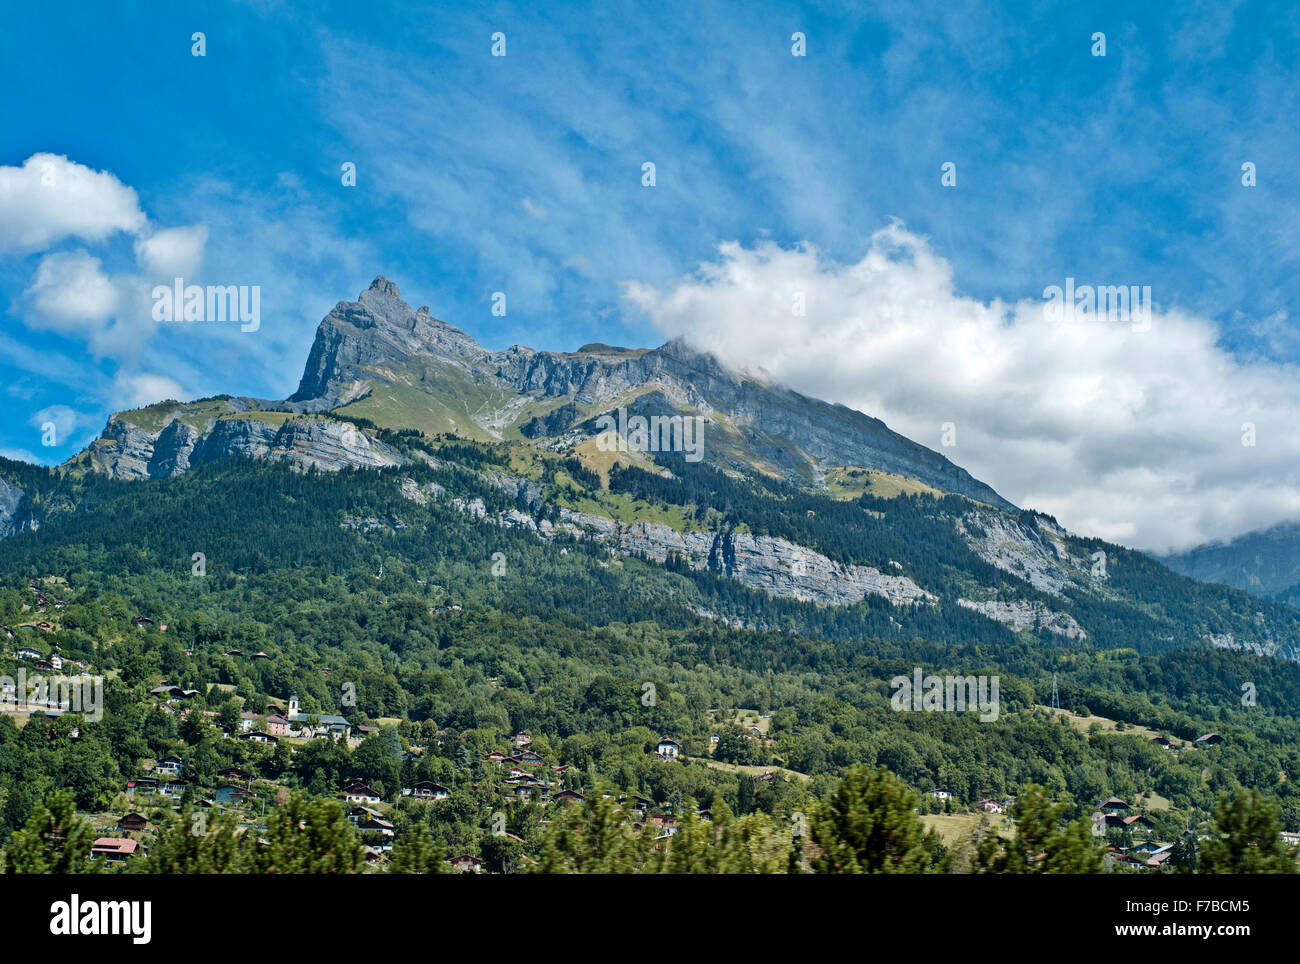 Office Tourisme Megeve Megeve France Alps Summer Stock Photos Megeve France Alps